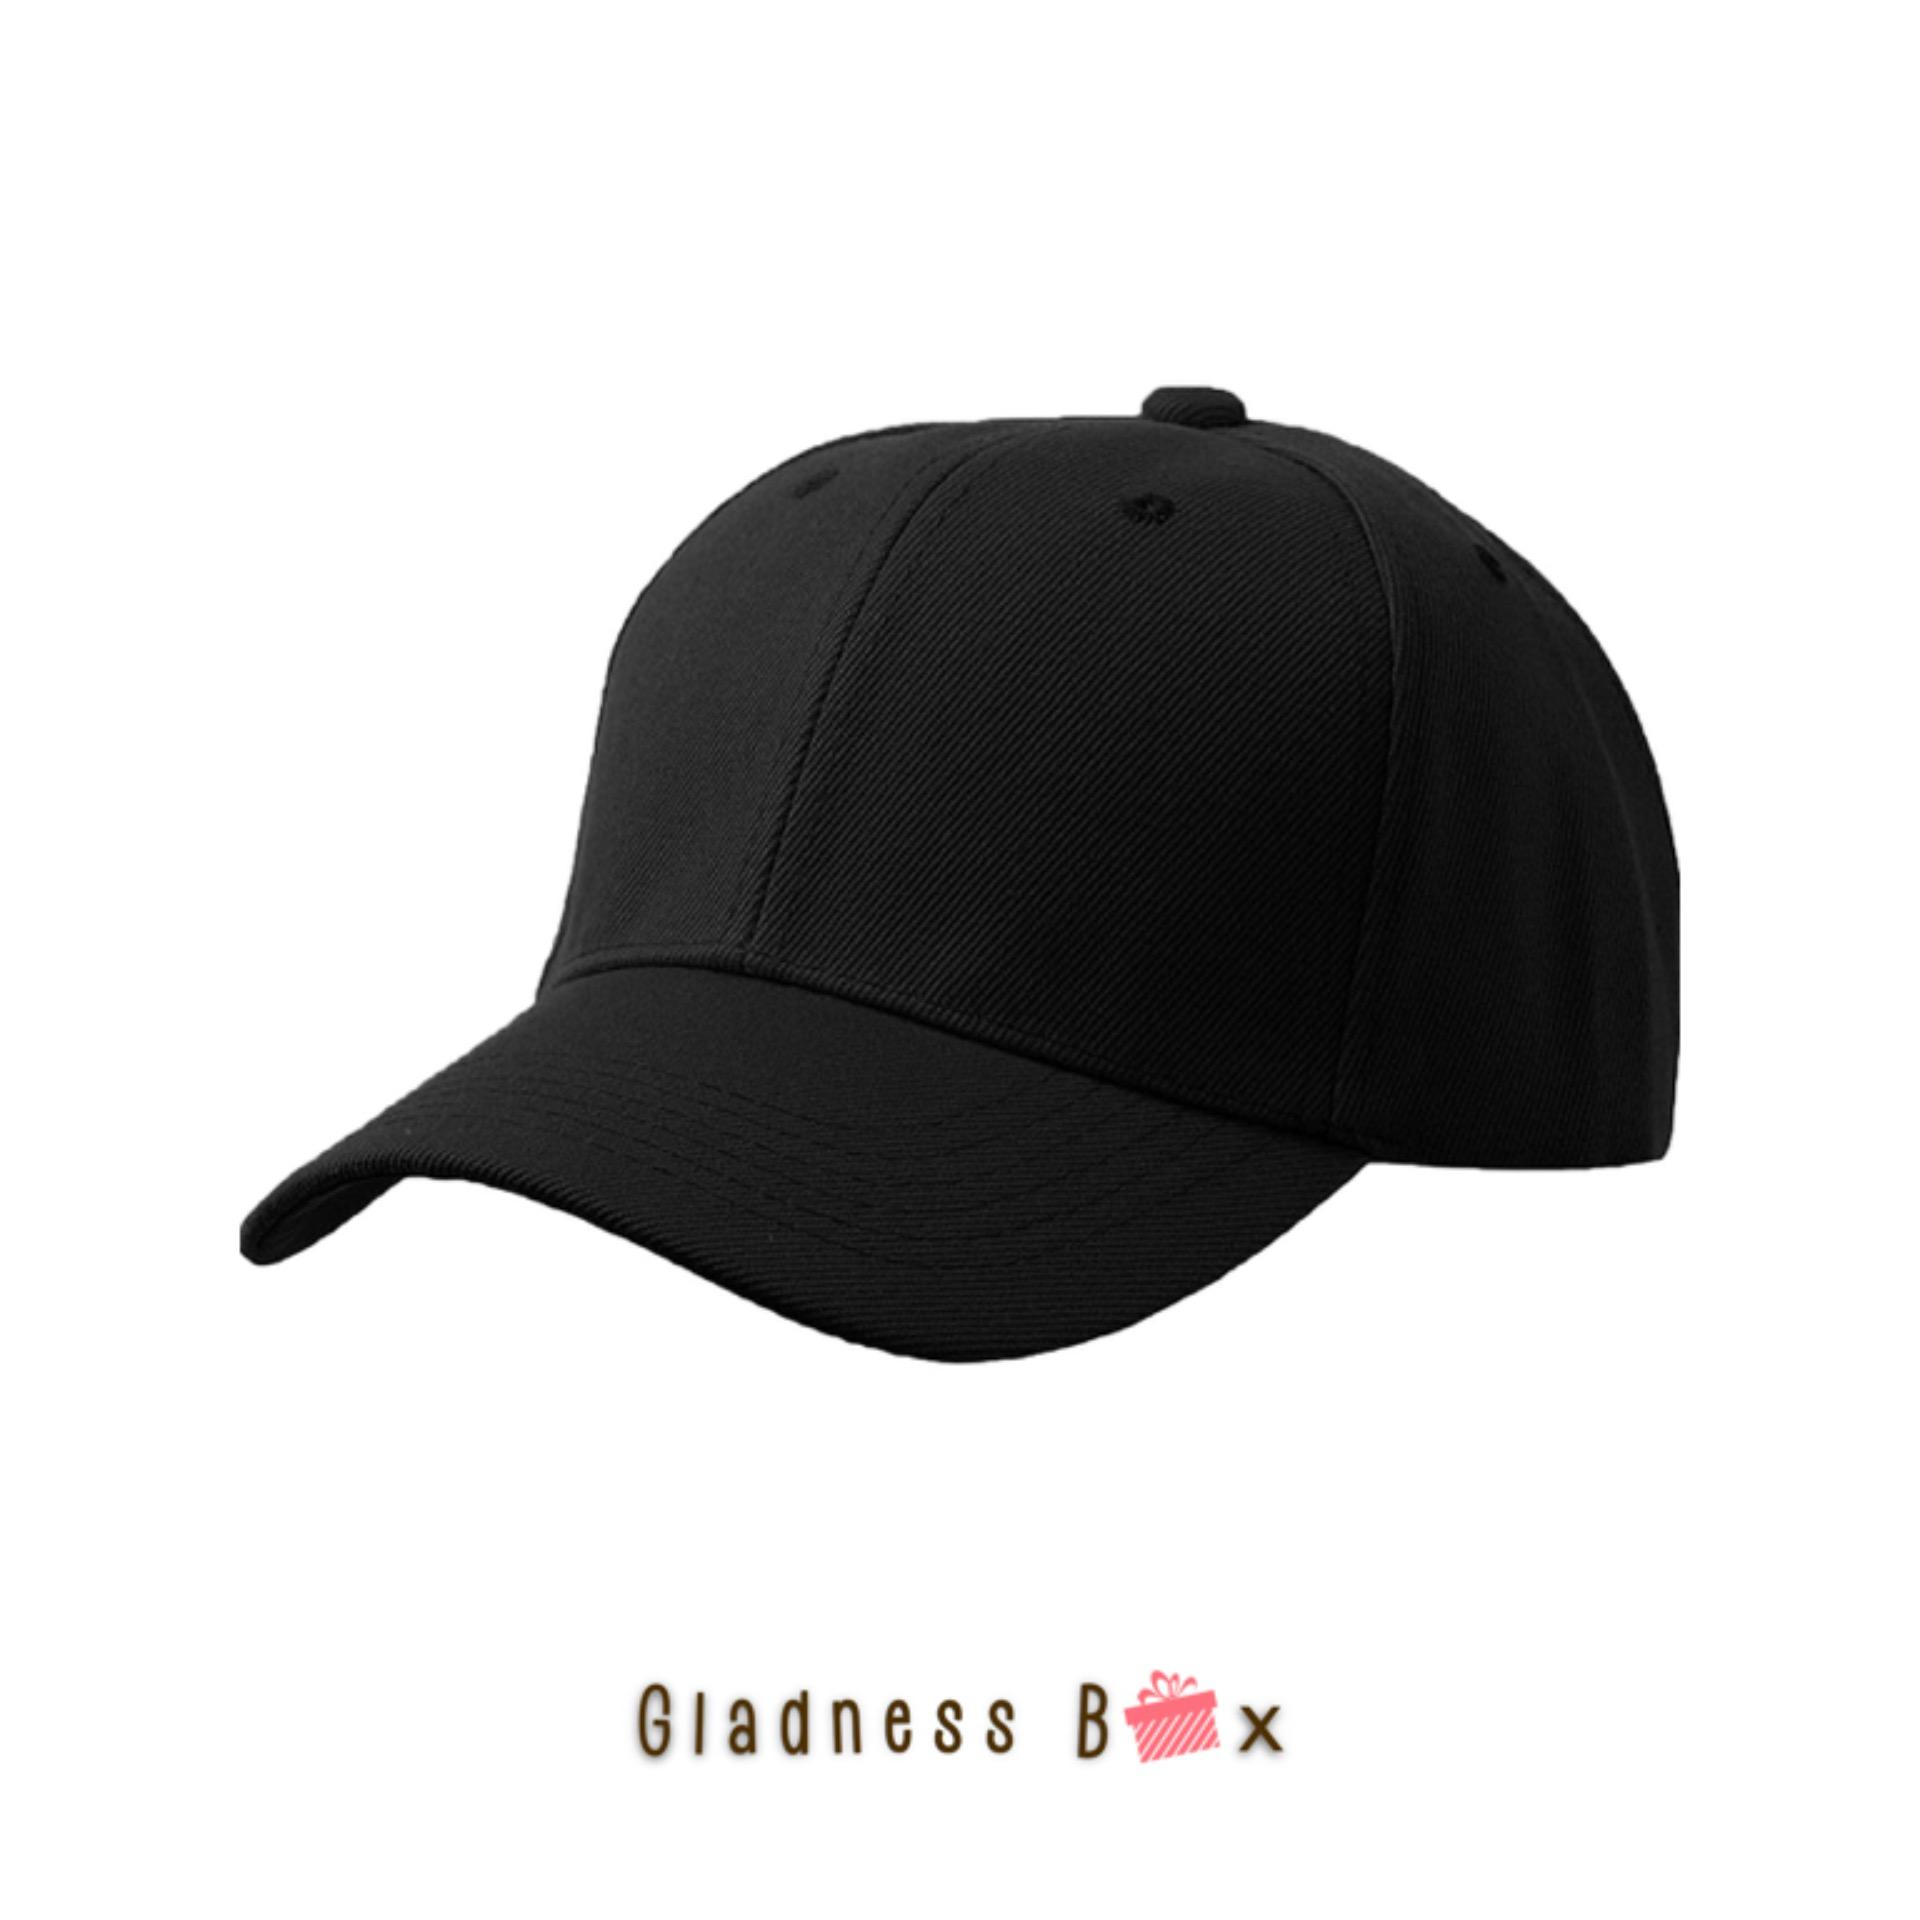 a076d6fe3 Gladness Box High Quality Plain Baseball Cap for Men Women Unisex